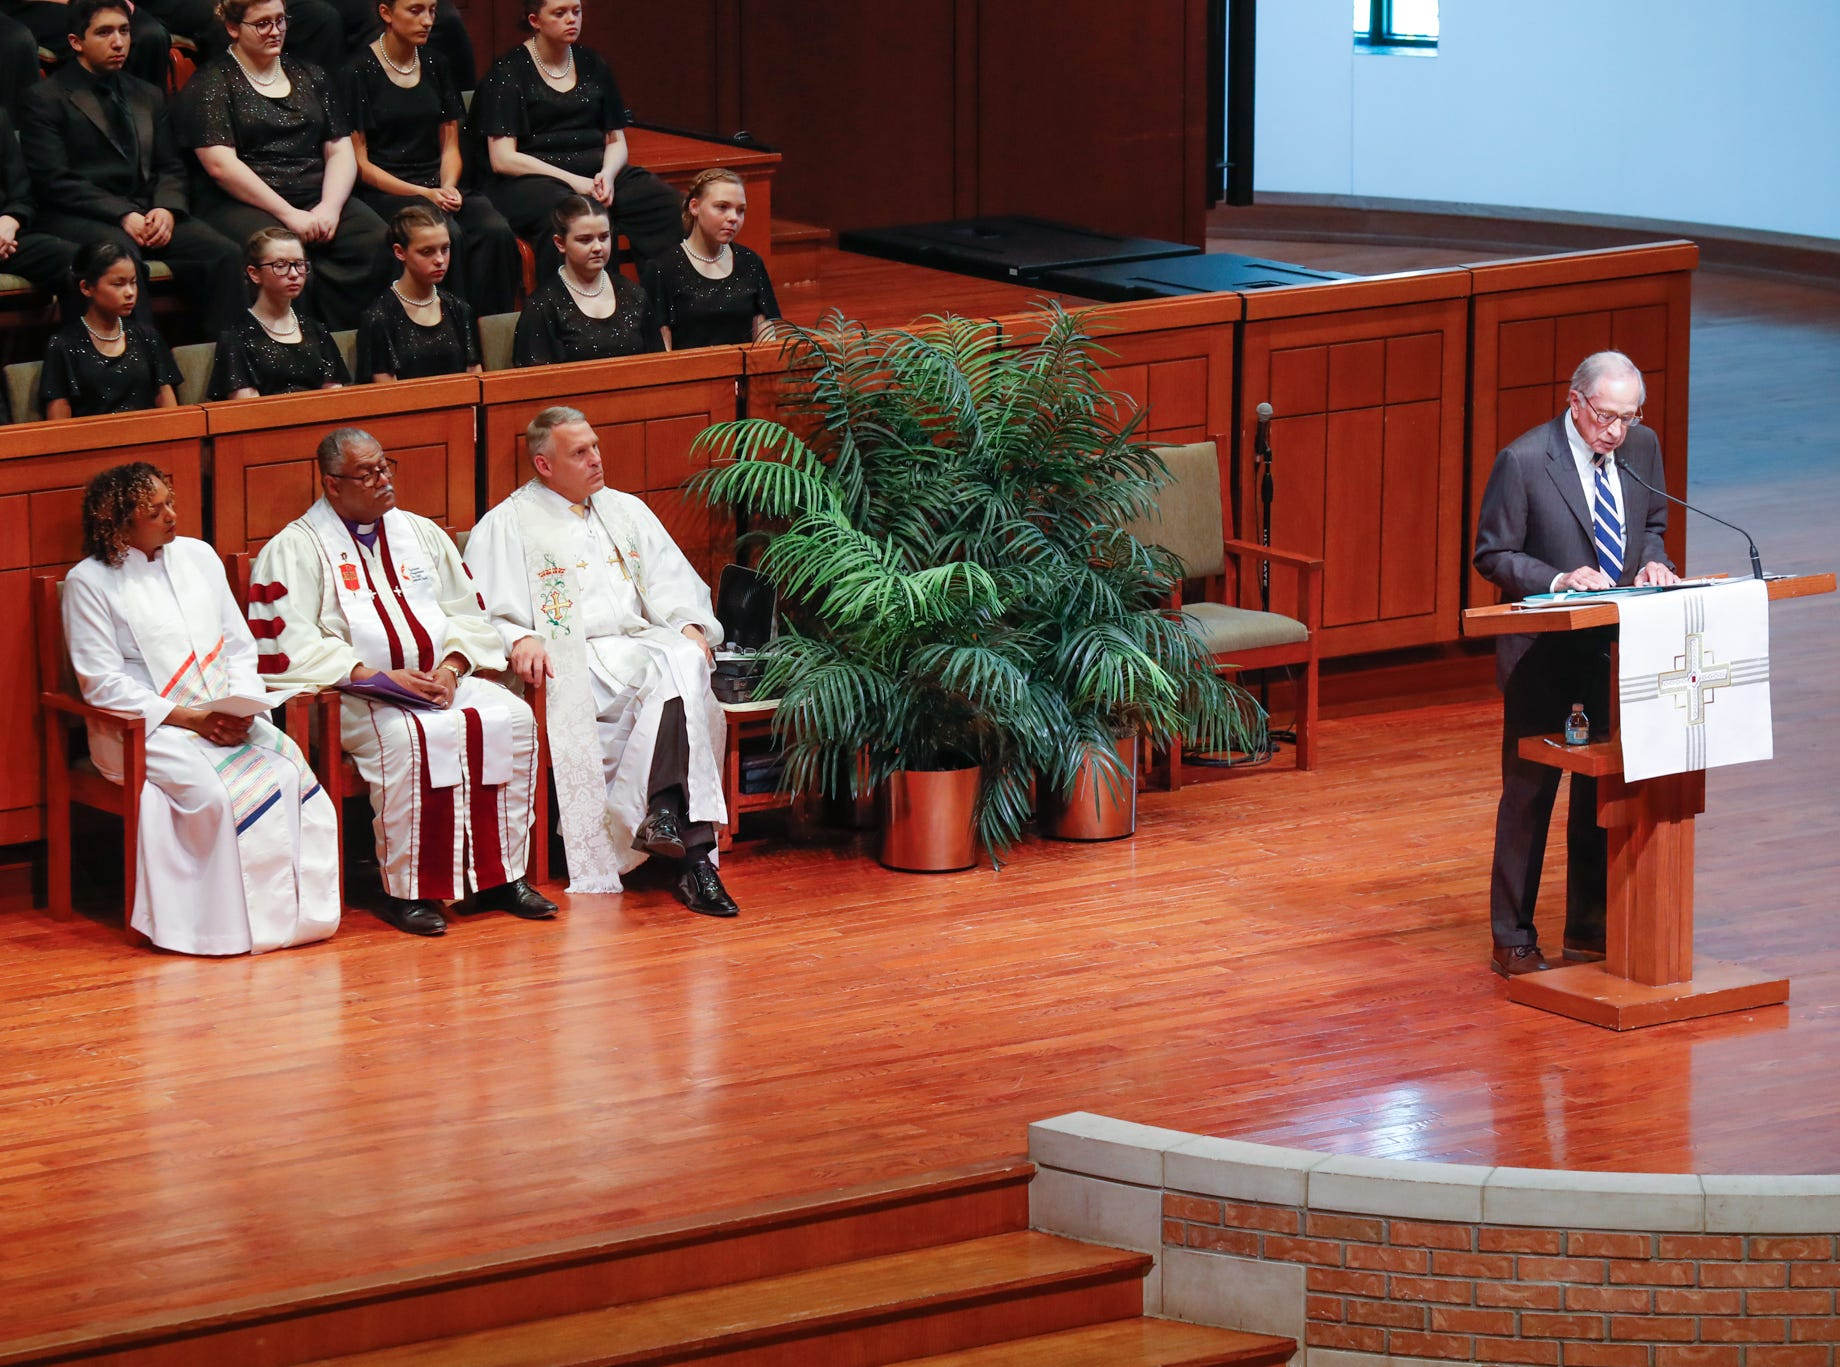 Sam Nunn, the former U.S. senator from Georgia and co-chair of the Nuclear Threat Initiative, pays tribute to former U.S. Sen. Richard Lugar, during a memorial service held at Saint Luke's United Methodist Church in Indianapolis, on Wednesday, May 15, 2019. Lugar served as mayor of Indianapolis from 1968 to 1975 and U.S. senator from 1977 to 2013. He died April 28, 2019, at the age of 87.